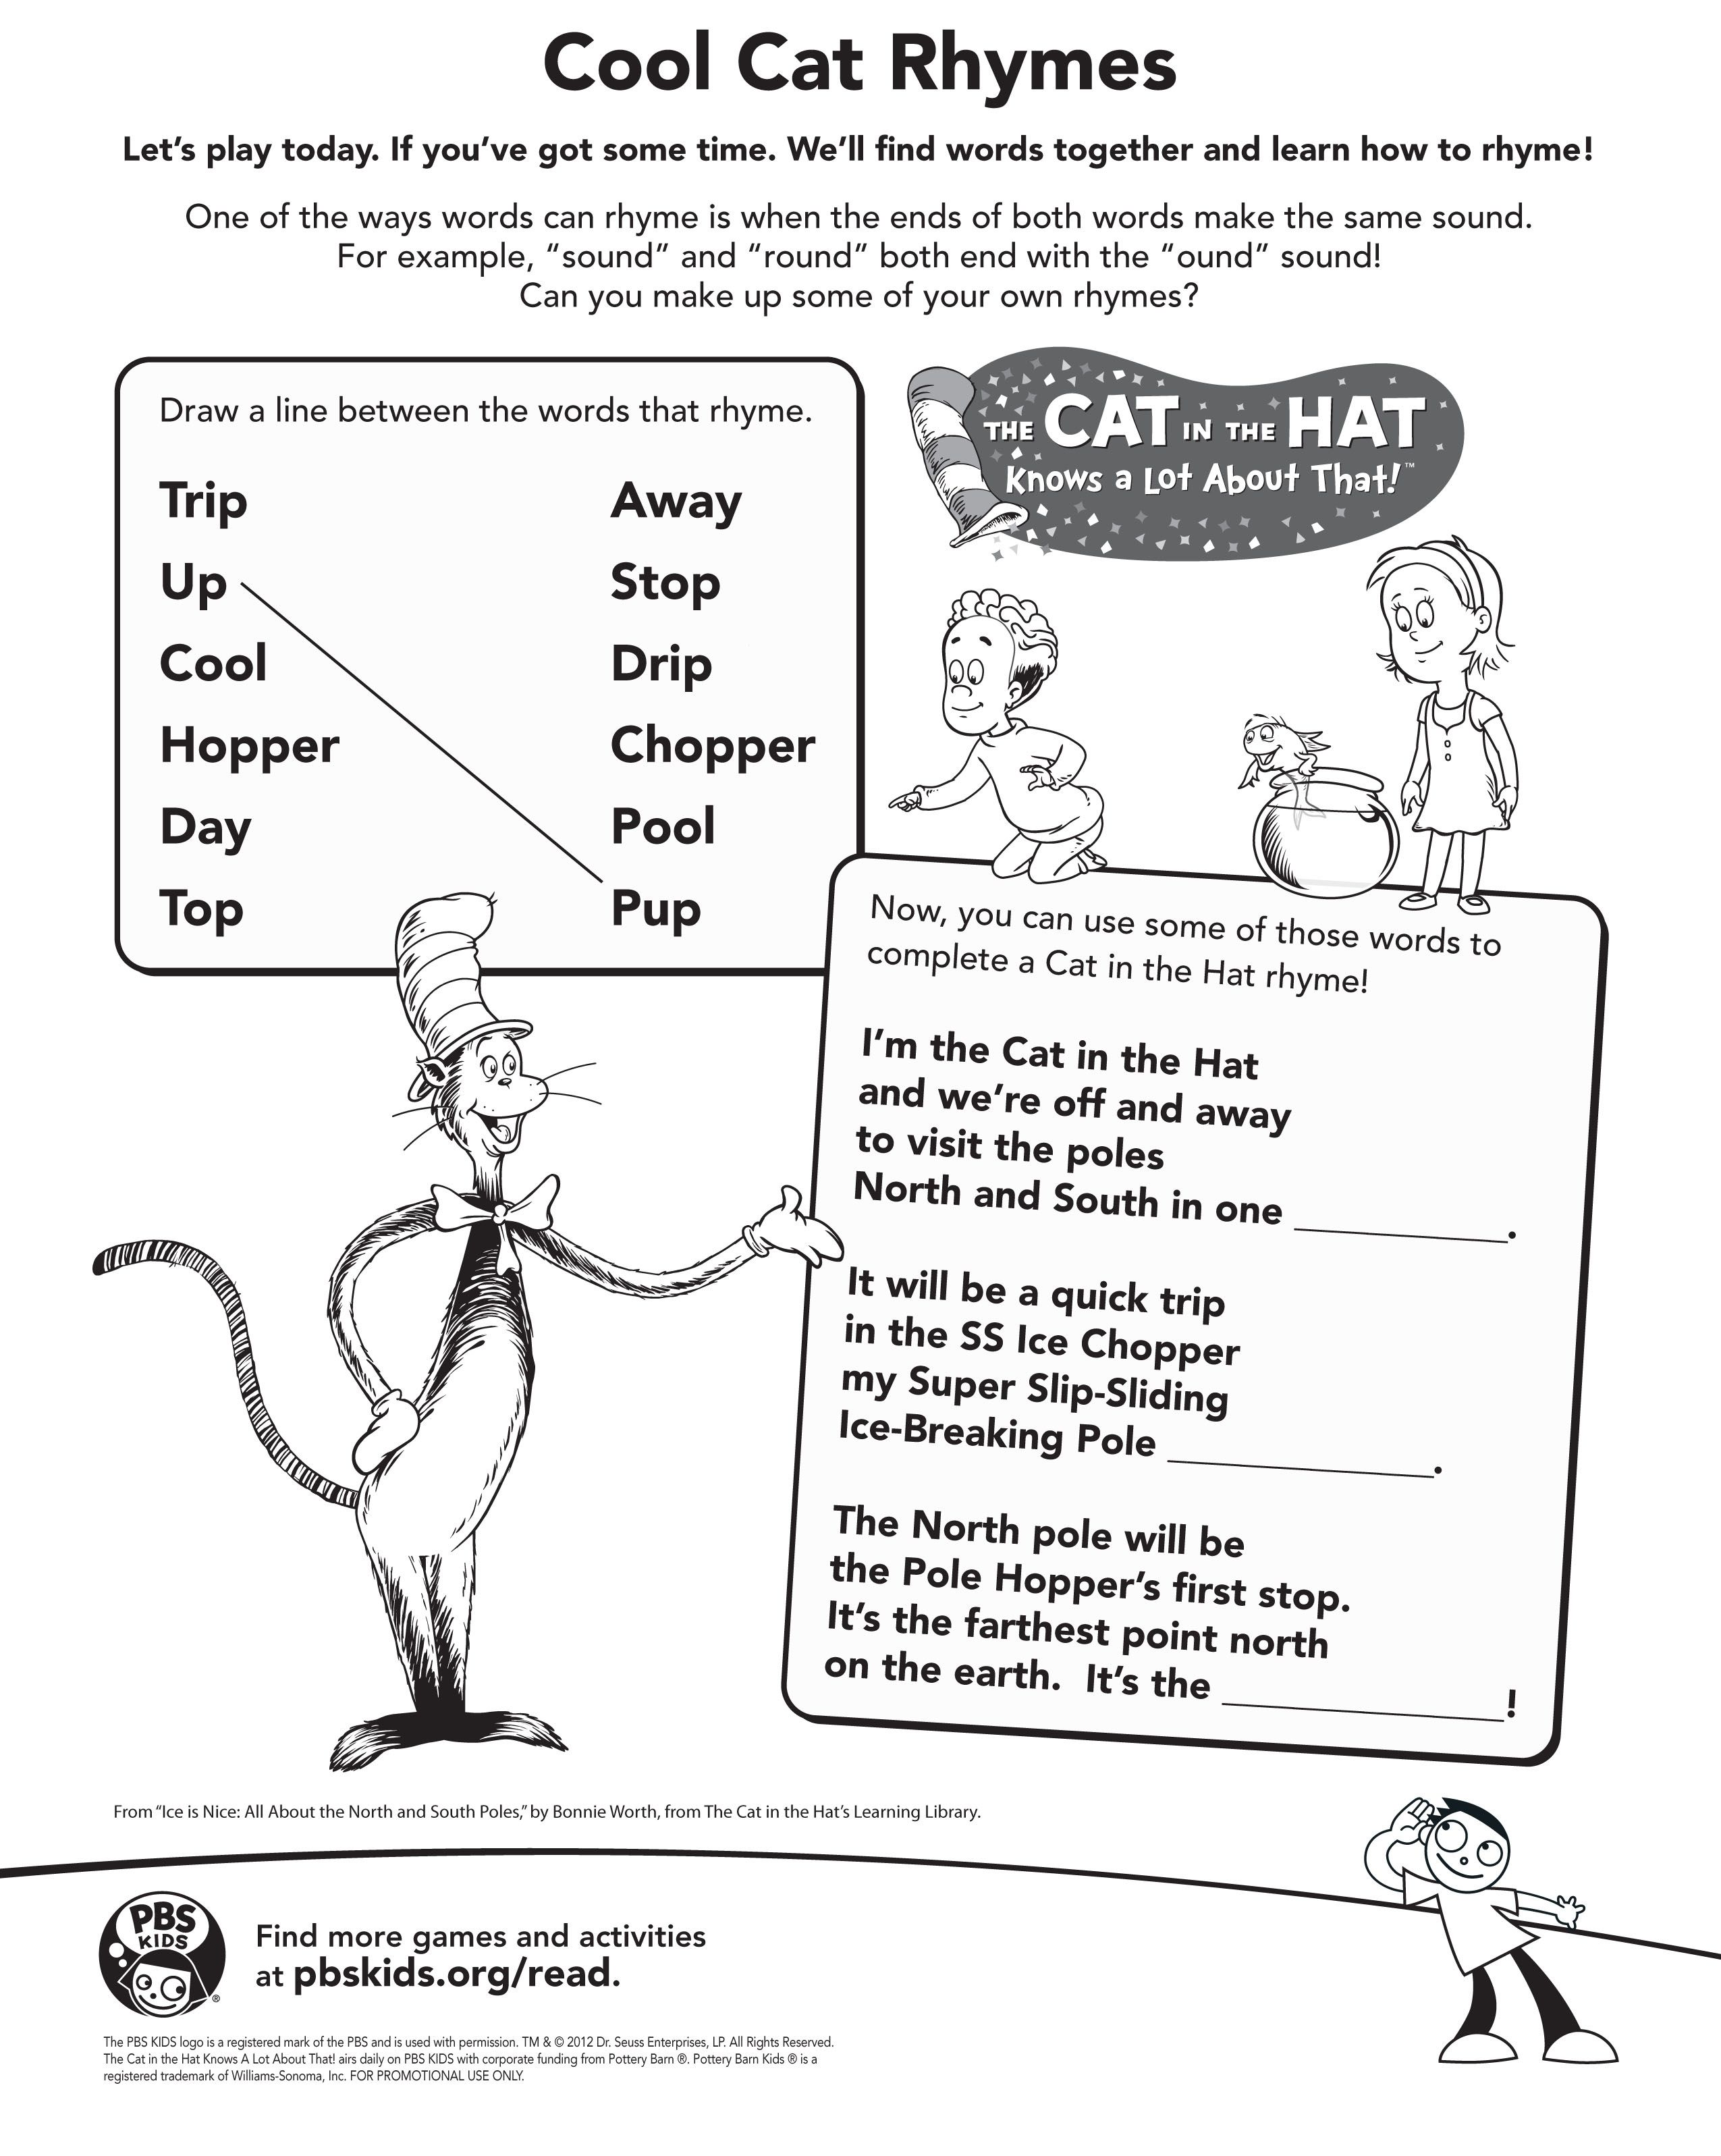 Cat in the Hat - Cool Cat Rhymes activity - RAA